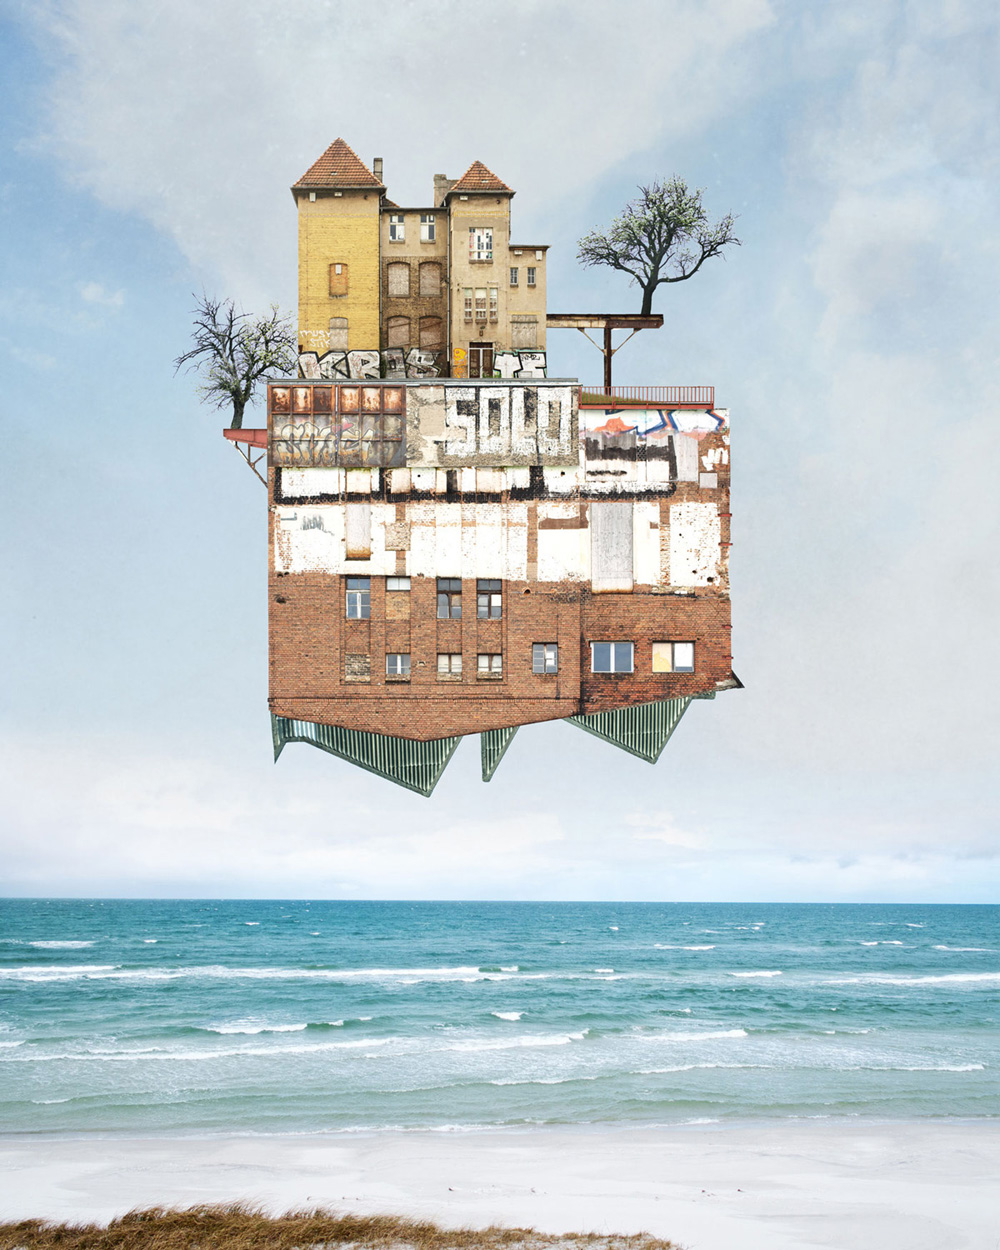 Brilliant-Surreal-Illustrations-Matthias